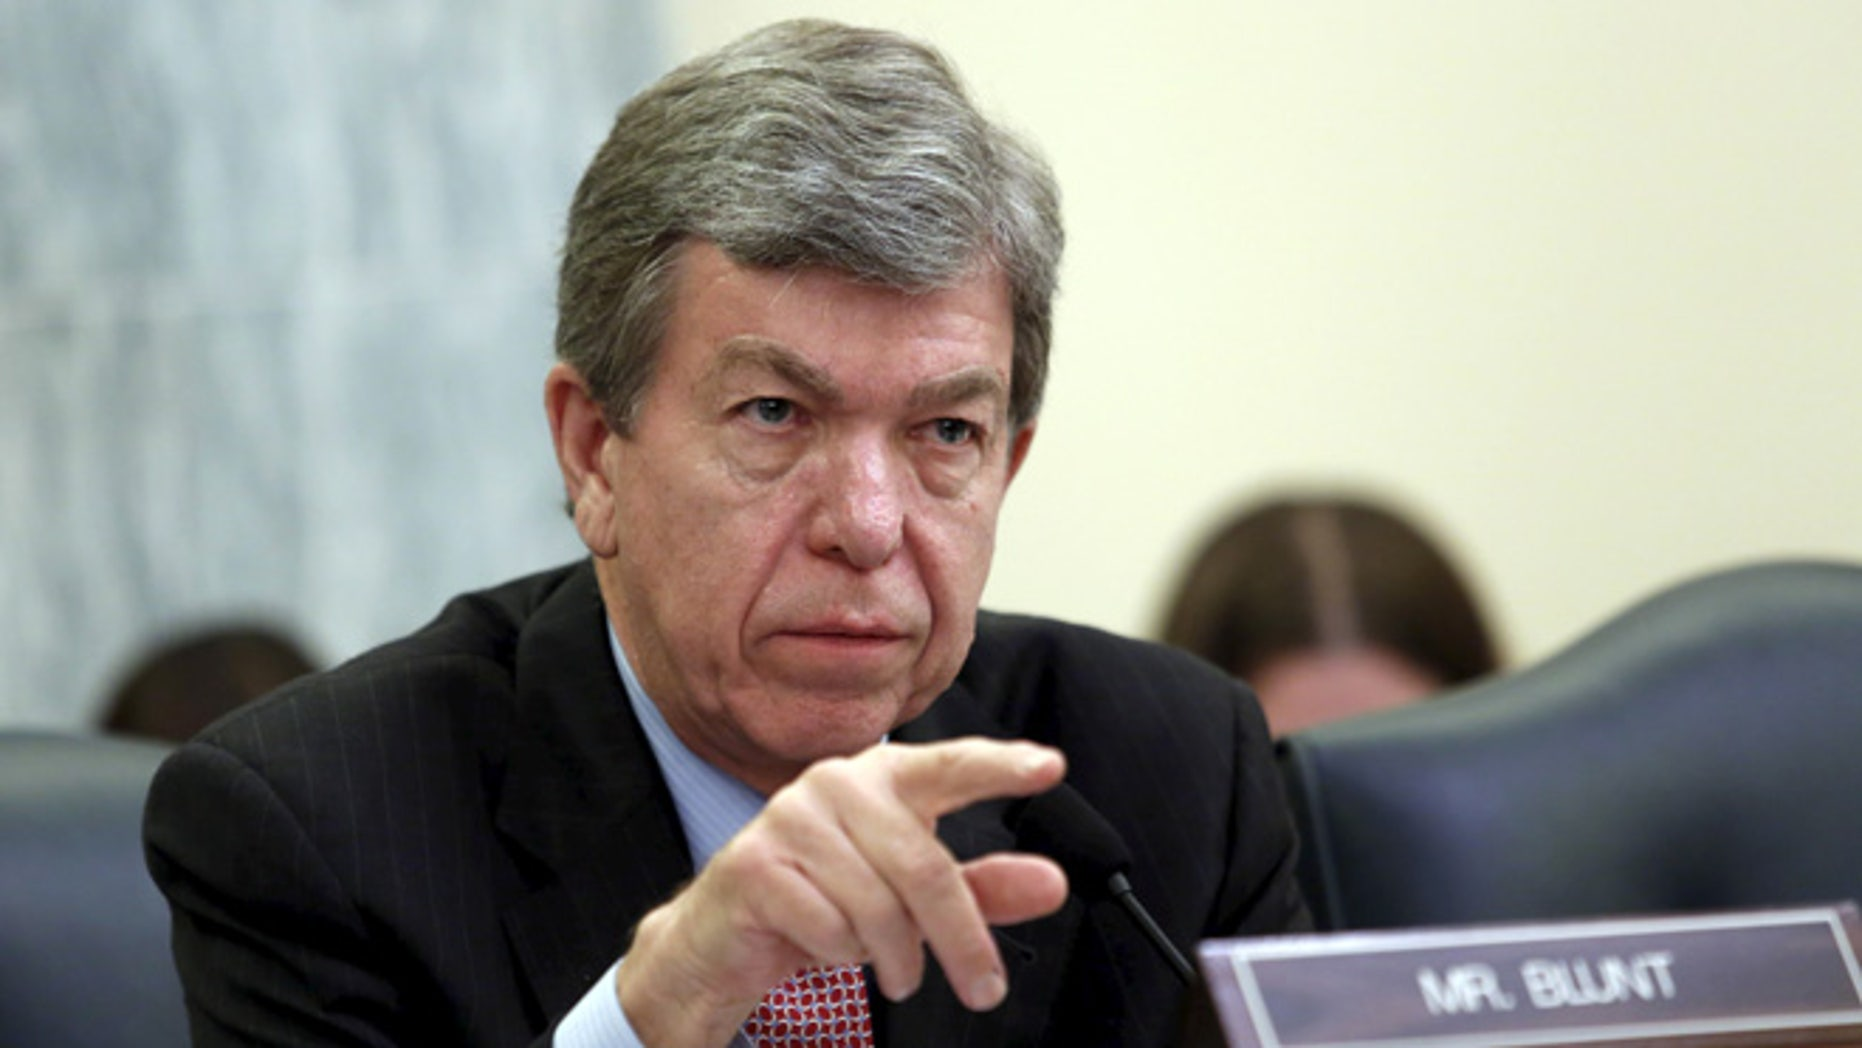 June 10, 2015: Sen. Roy Blunt speaks at a Senate Commerce Science and Transportation Committee hearing. (Reuters)